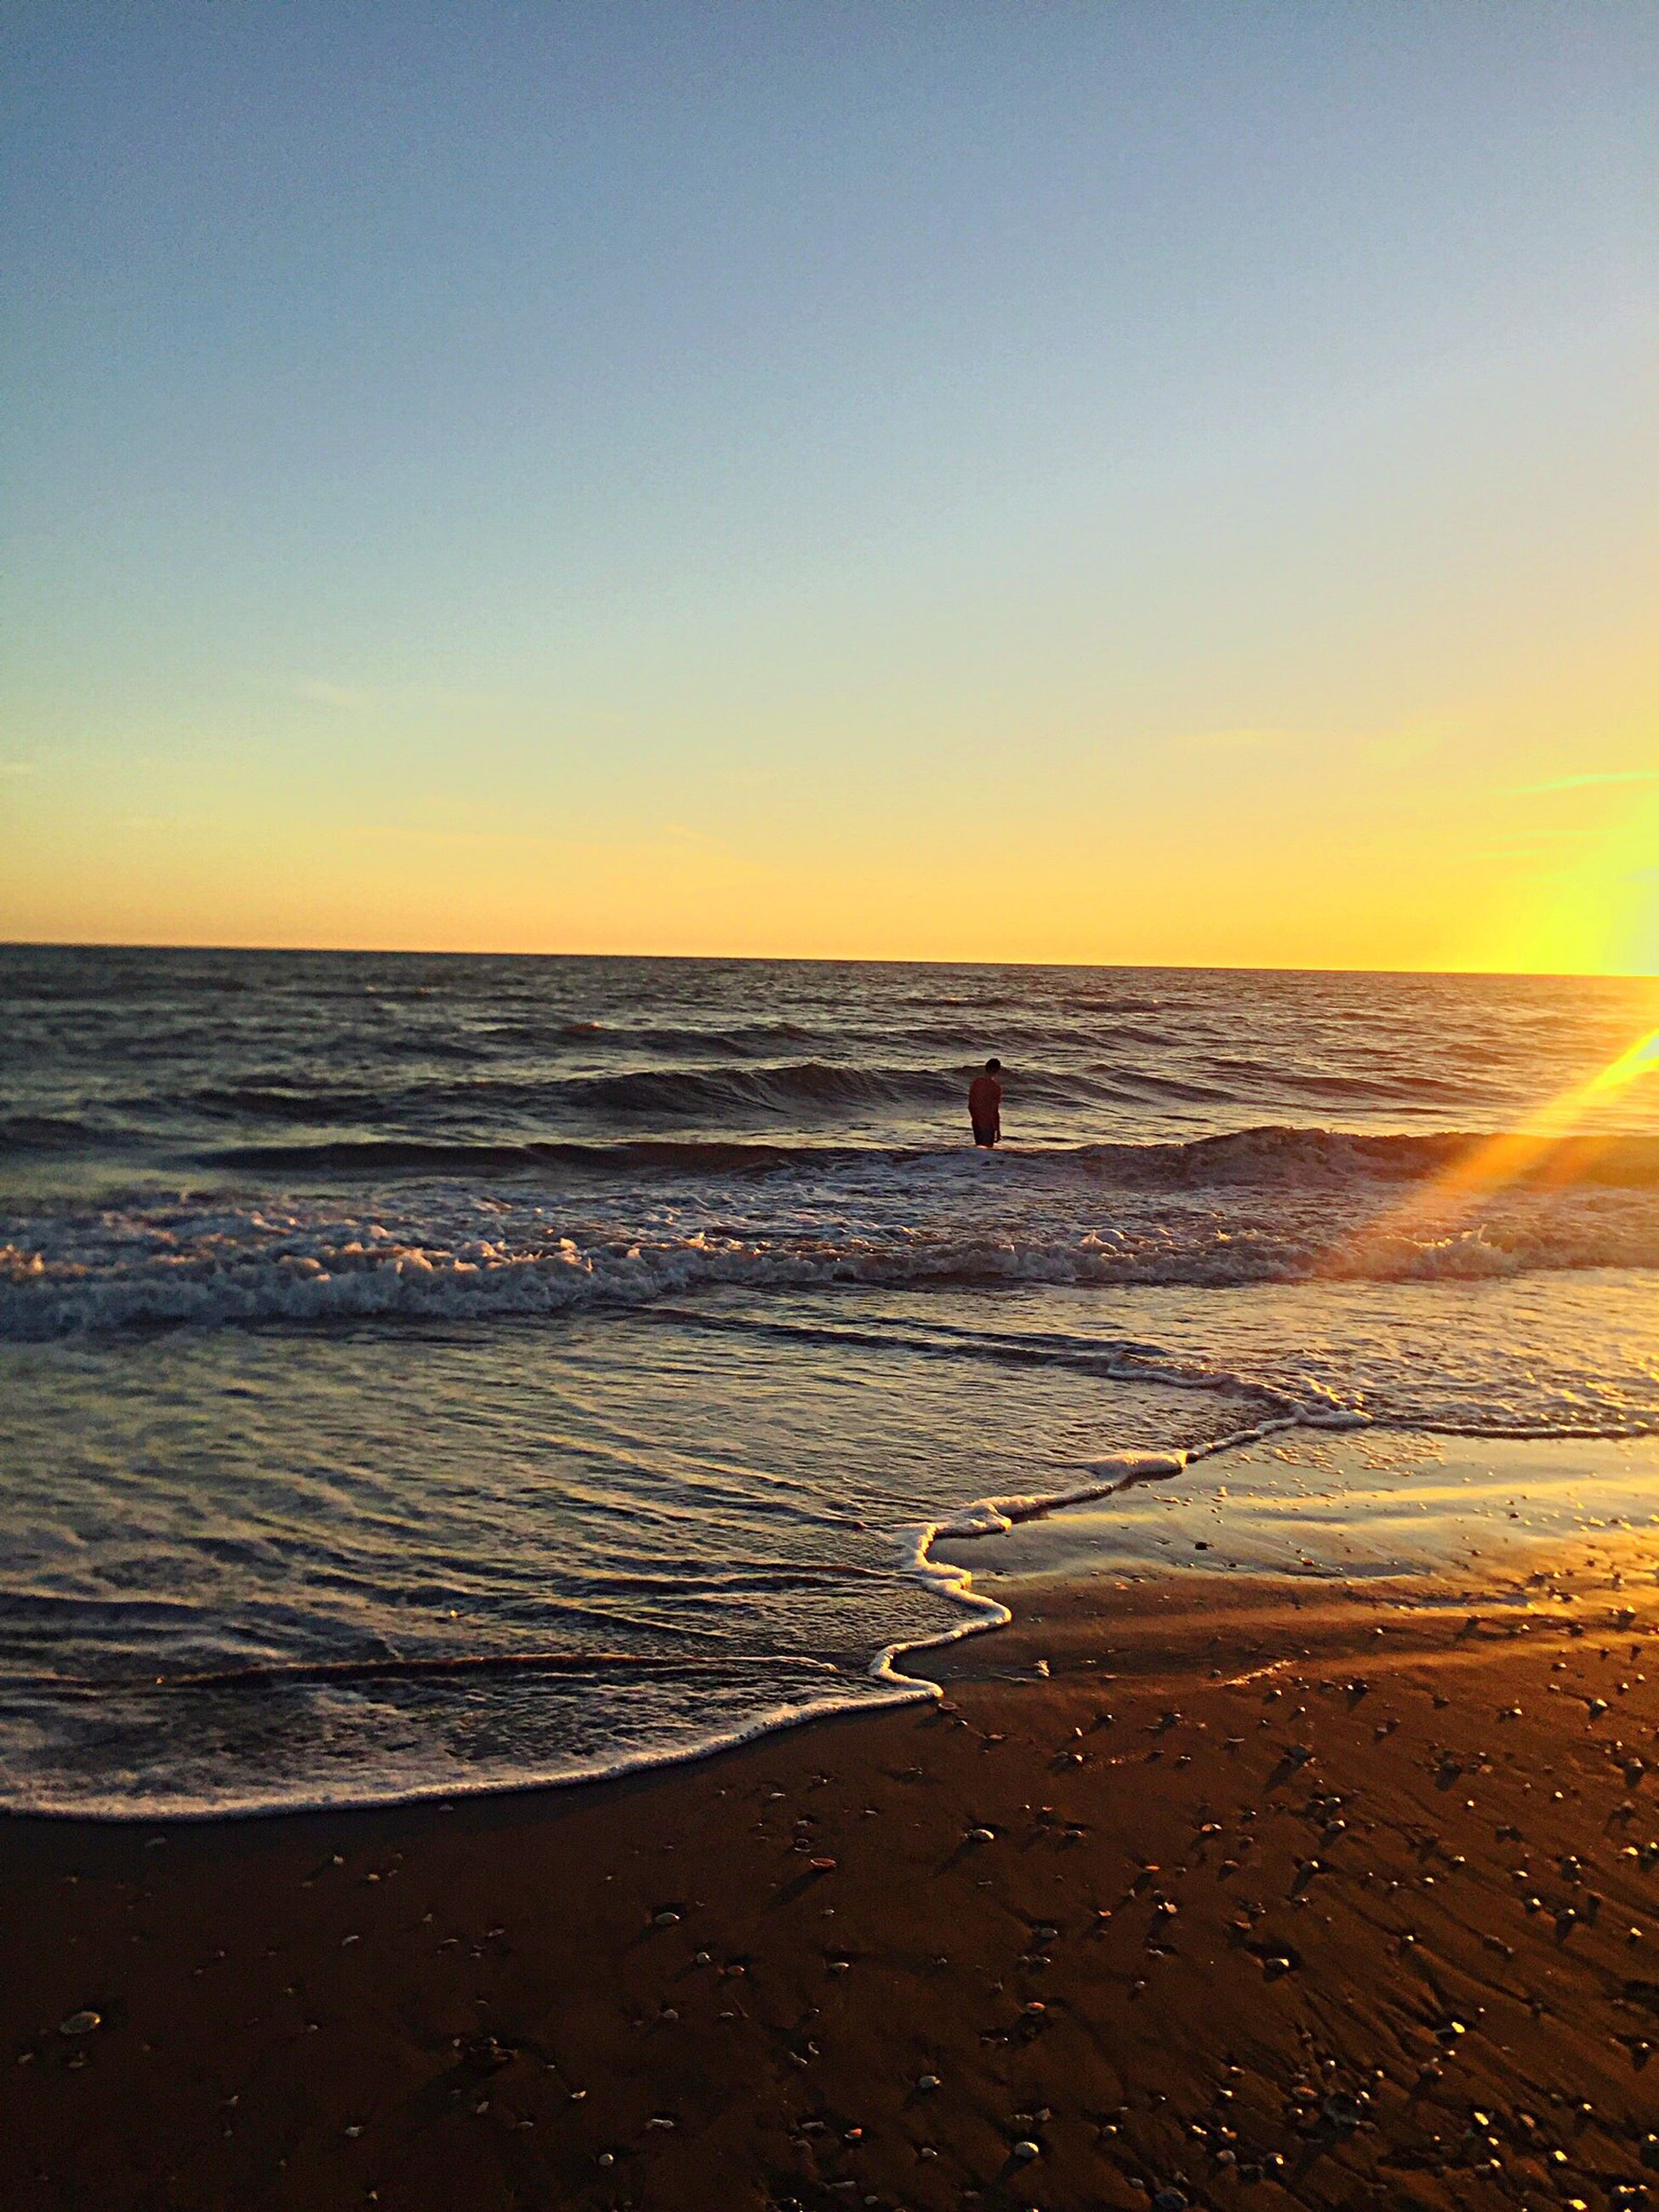 sea, beach, horizon over water, water, shore, sunset, sand, scenics, tranquil scene, beauty in nature, tranquility, wave, clear sky, nature, orange color, idyllic, copy space, sky, sun, coastline